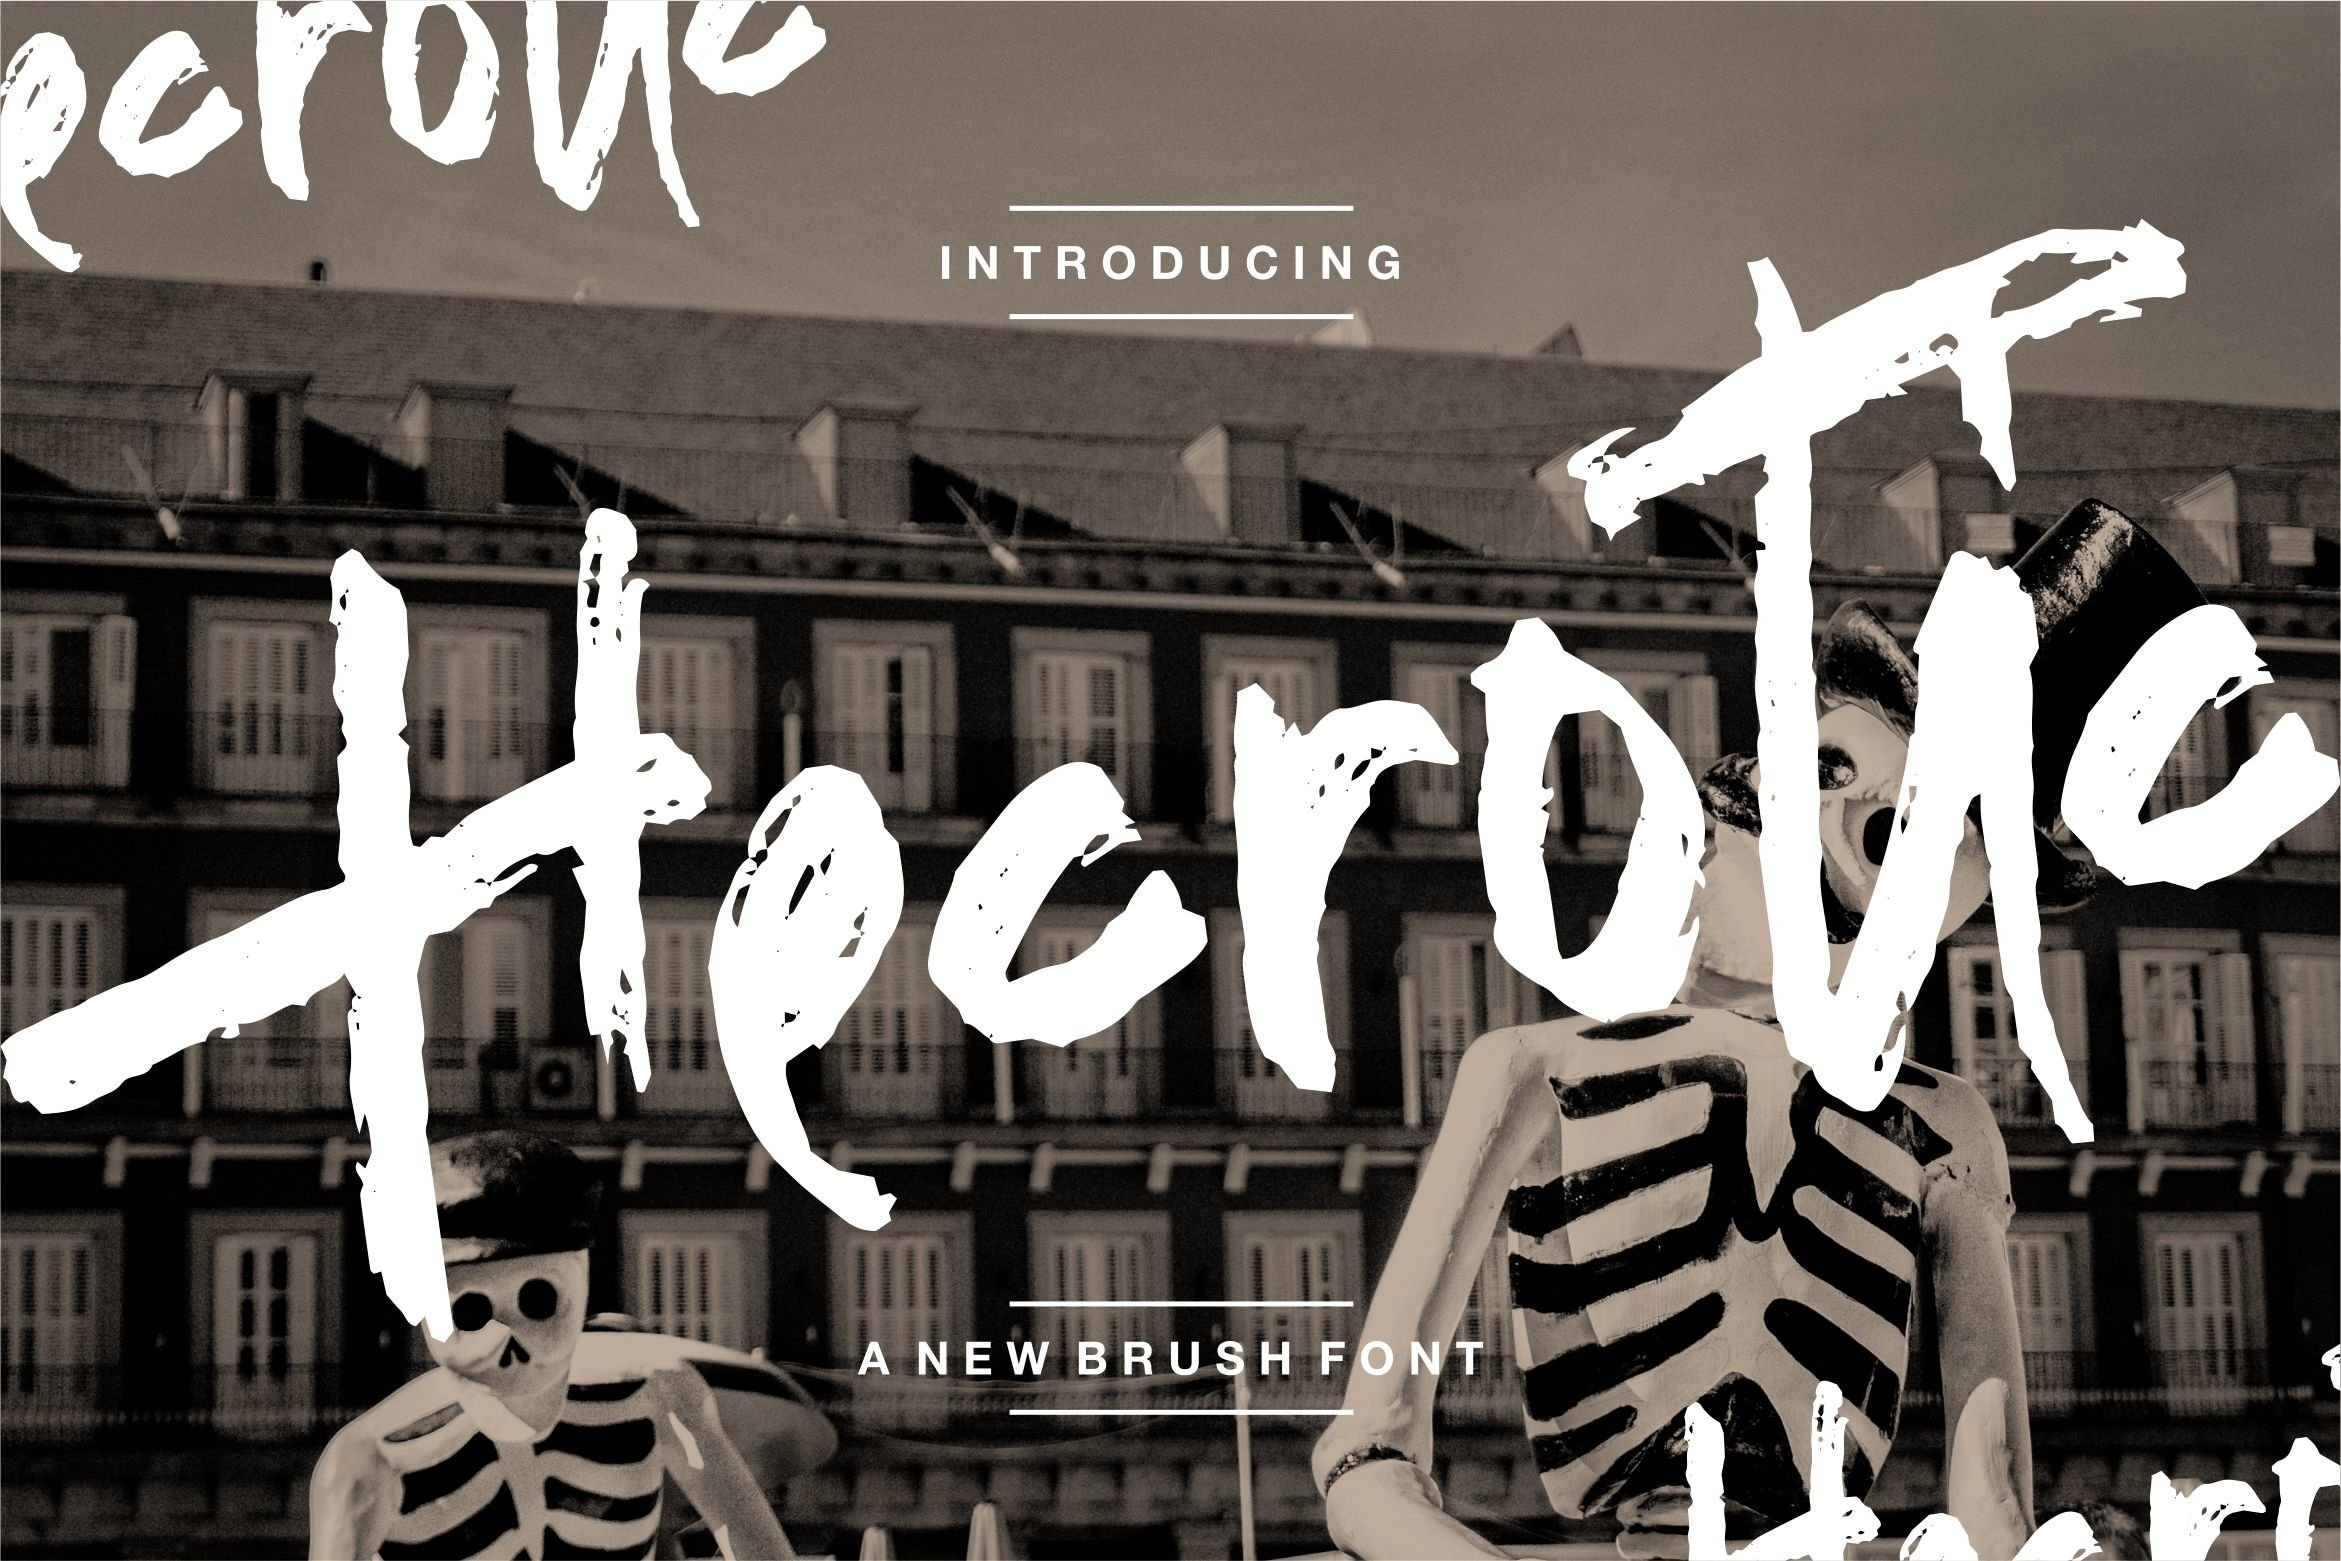 Hecrotic - A New Brush Font example image 1